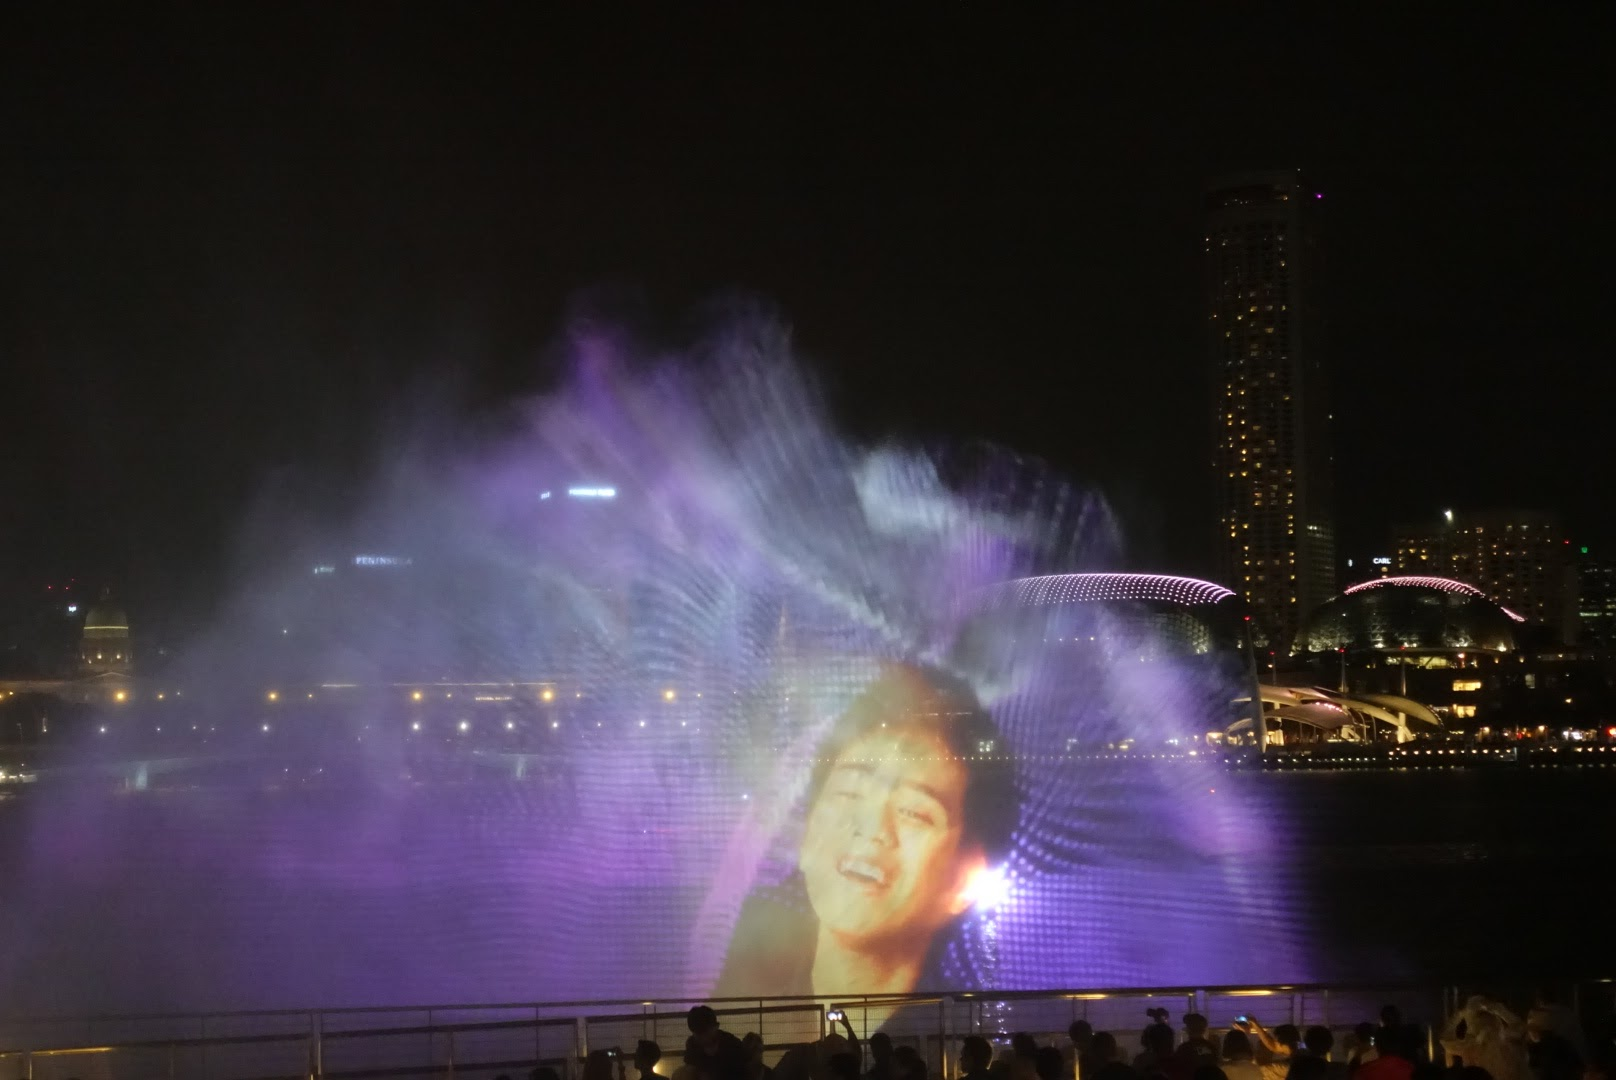 The water show in front of the Marina Bay Sands Shoppes.